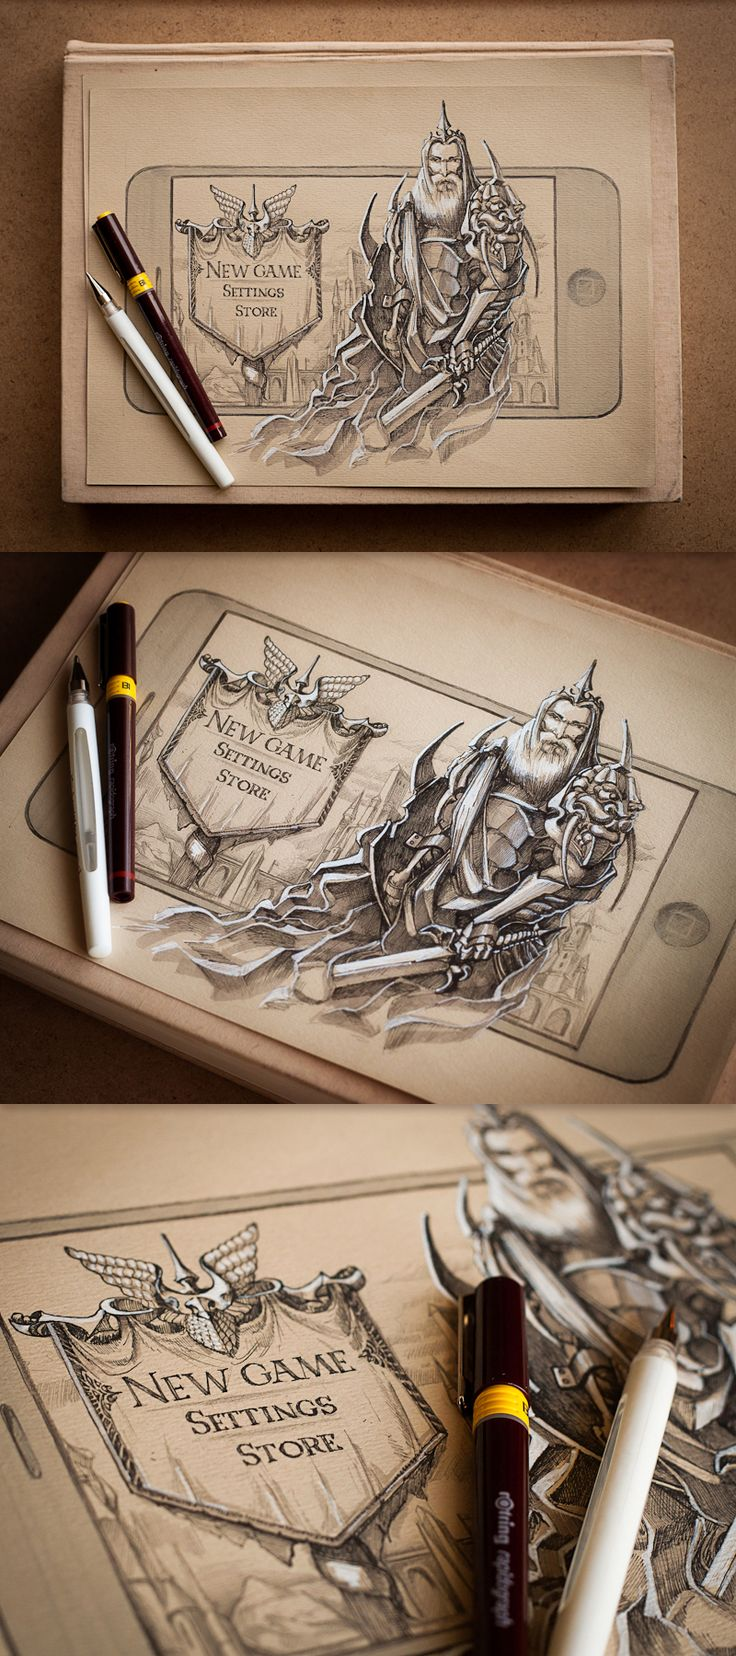 Incredible and Exciting Artwork from Creative Mints (+ Process Shots)